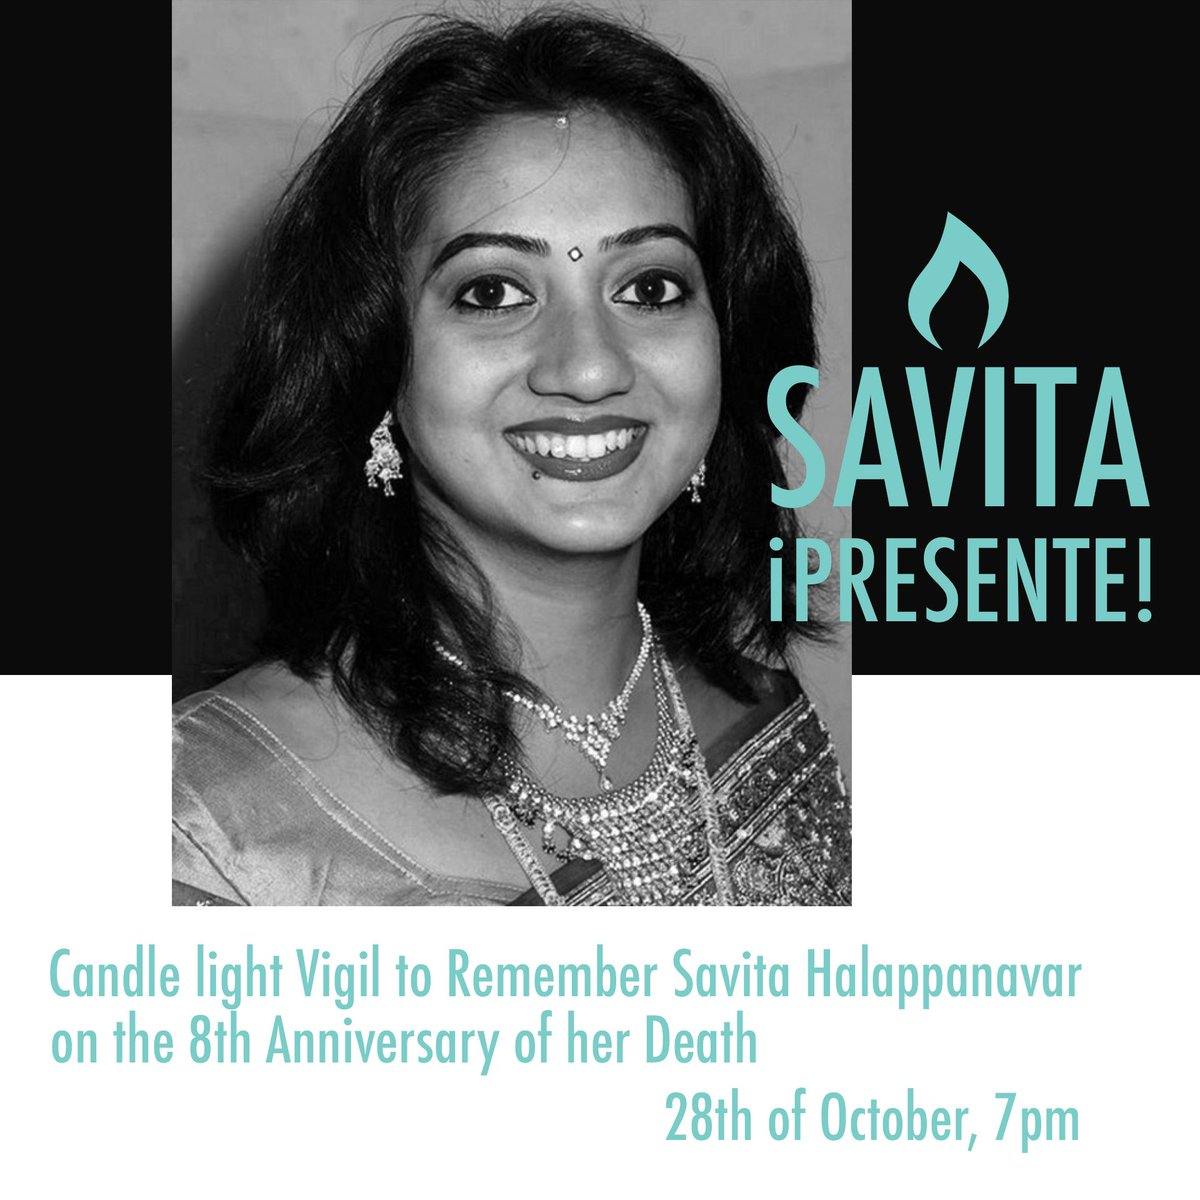 We would like to ask everyone to share photos of candles and reflections on all their social media platforms using the hashtag #SavitaPresente at 7pm on the 8th year anniversary of Savita Halappanavar's death on Wednesday, 28th Oct. More details to follow. https://t.co/ha5mVjbV5S